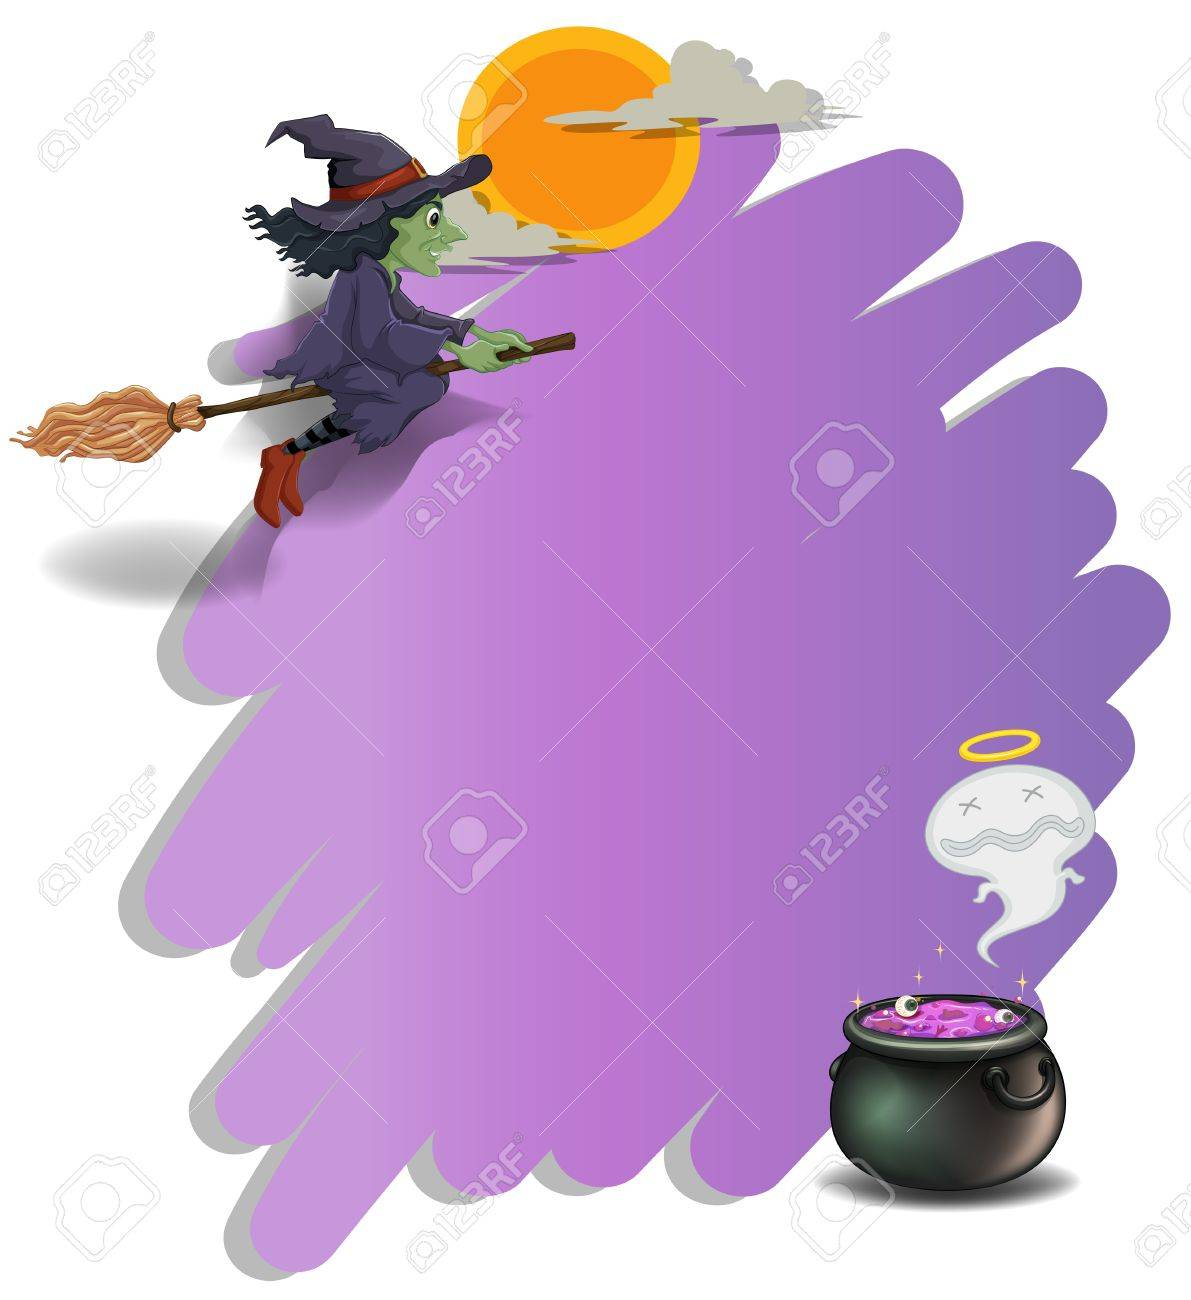 illustration of a witch riding on a broom and an empty violet